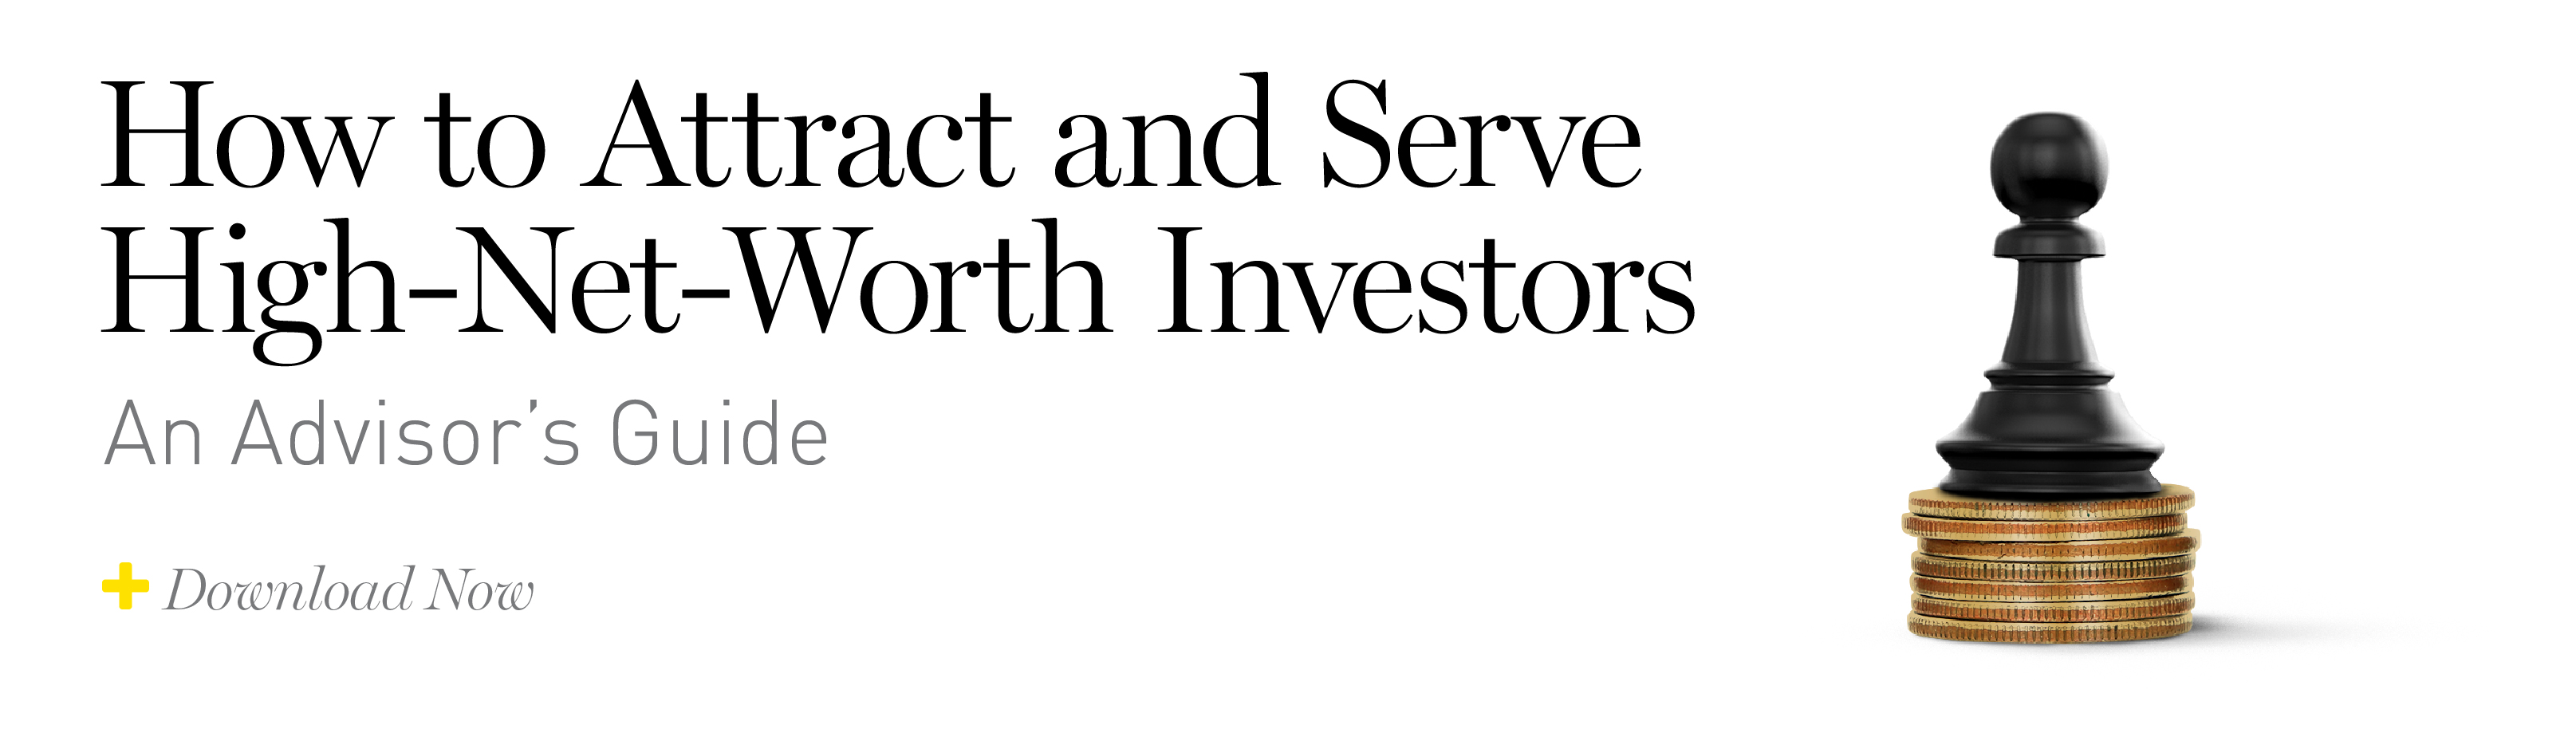 How to Attract and Serve High Net Worth Investors